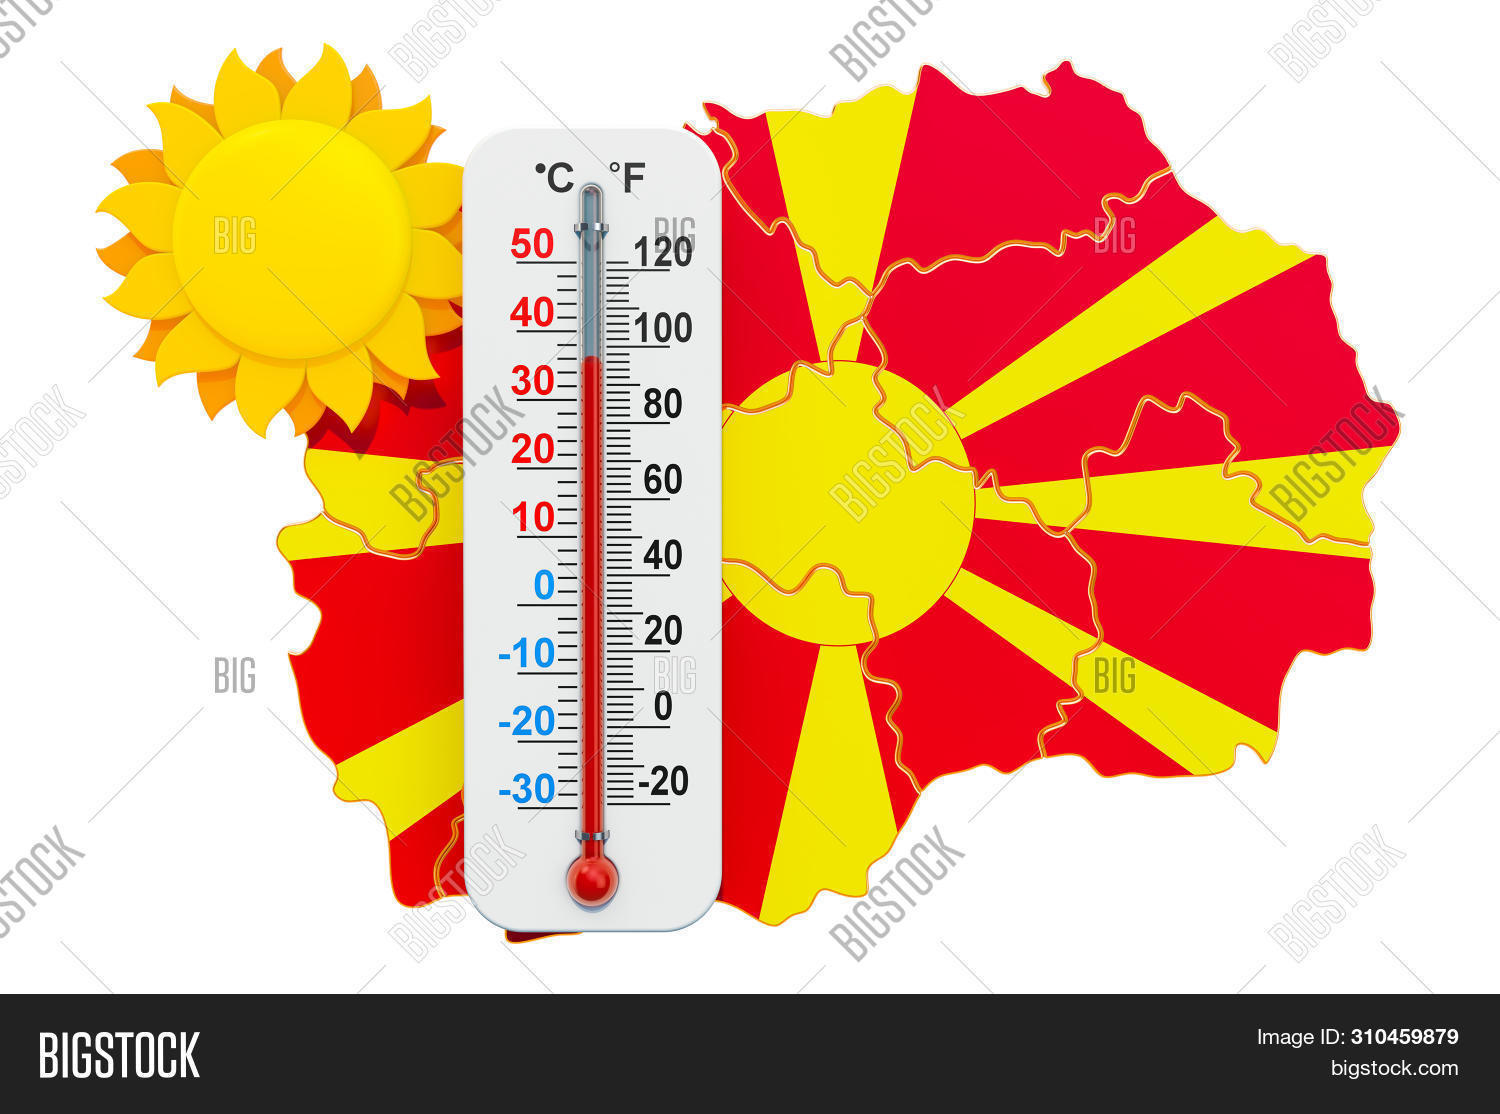 Heat In Macedonia Concept. 3d Rendering Isolated On White Background